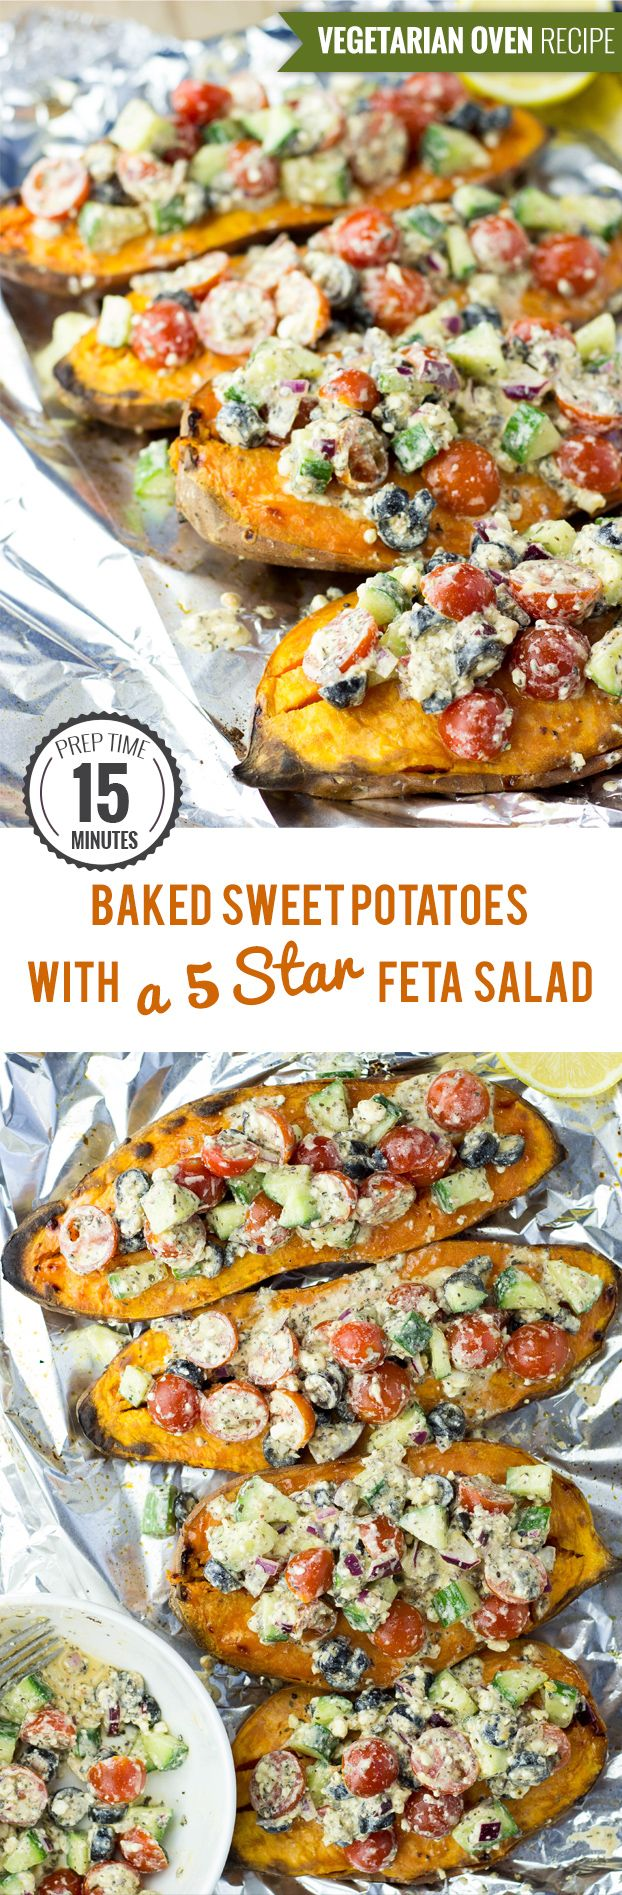 Baked Sweet Potatoes with a Five Star Feta Salad #sweetpotatoes #baked #feta | hurrythefoodup.com